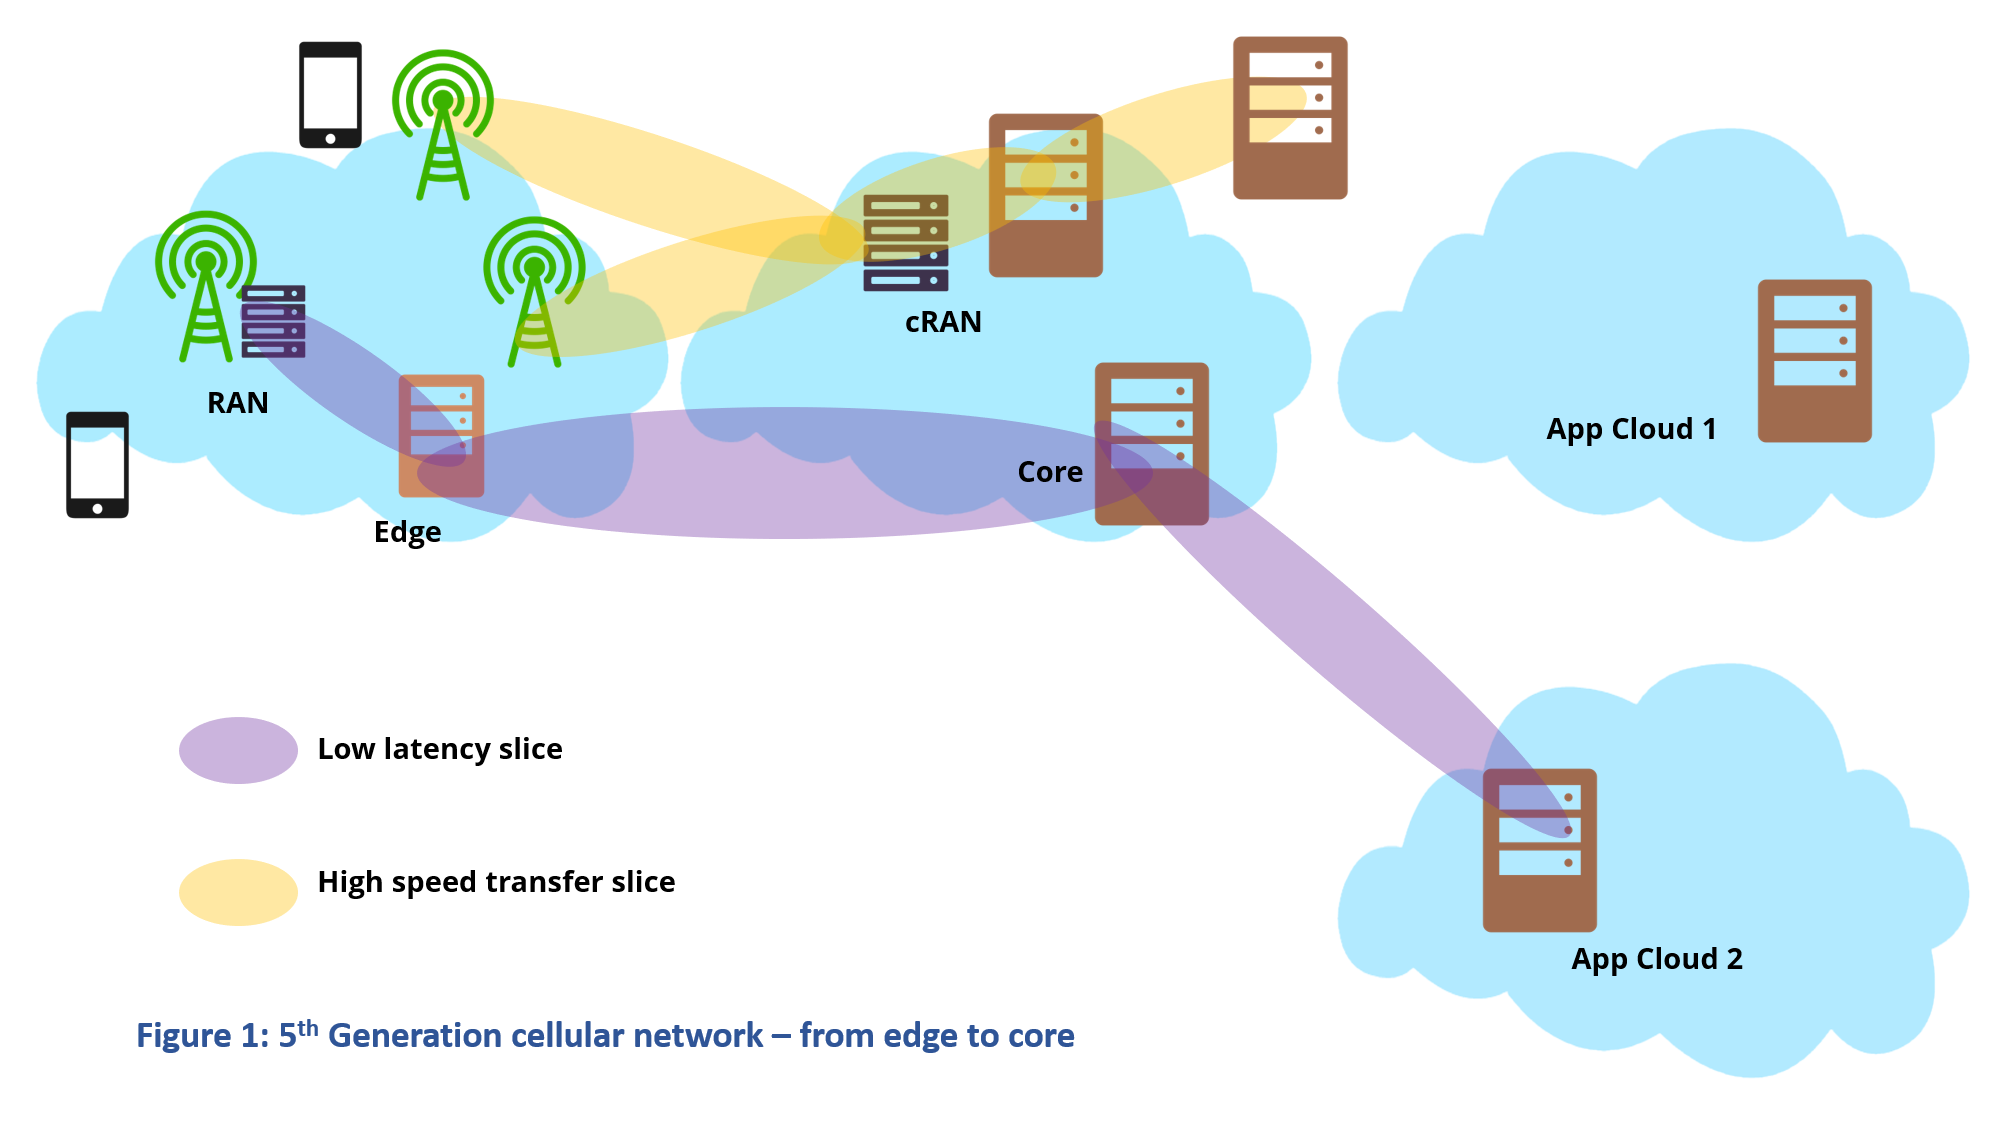 5G cellular network - edge to core